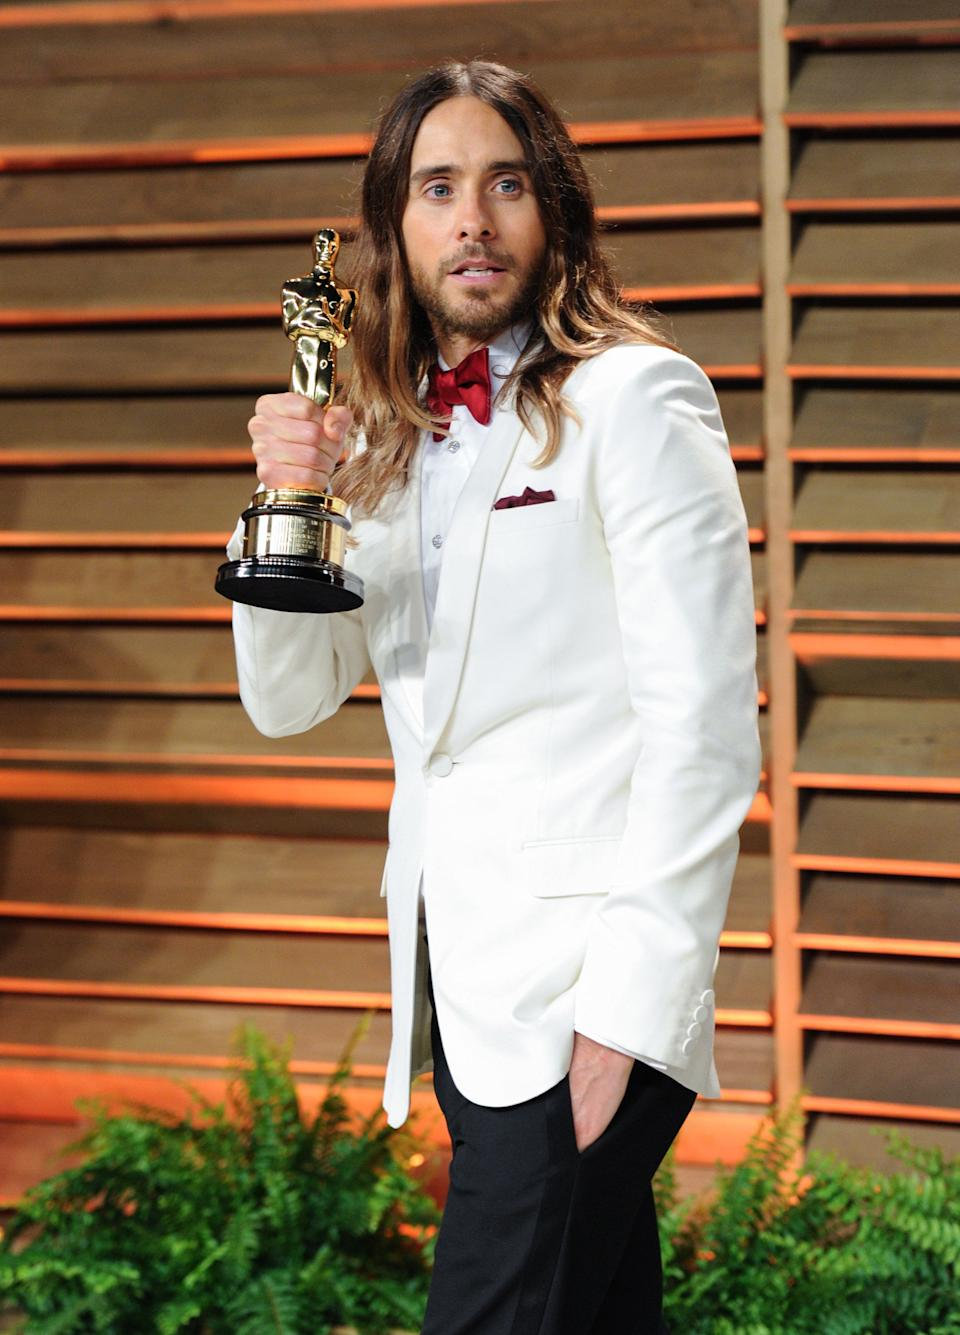 Jared Leto holding his Oscar for Best Supporting Actor. (Photo: Evan Agostini/Invision/AP)